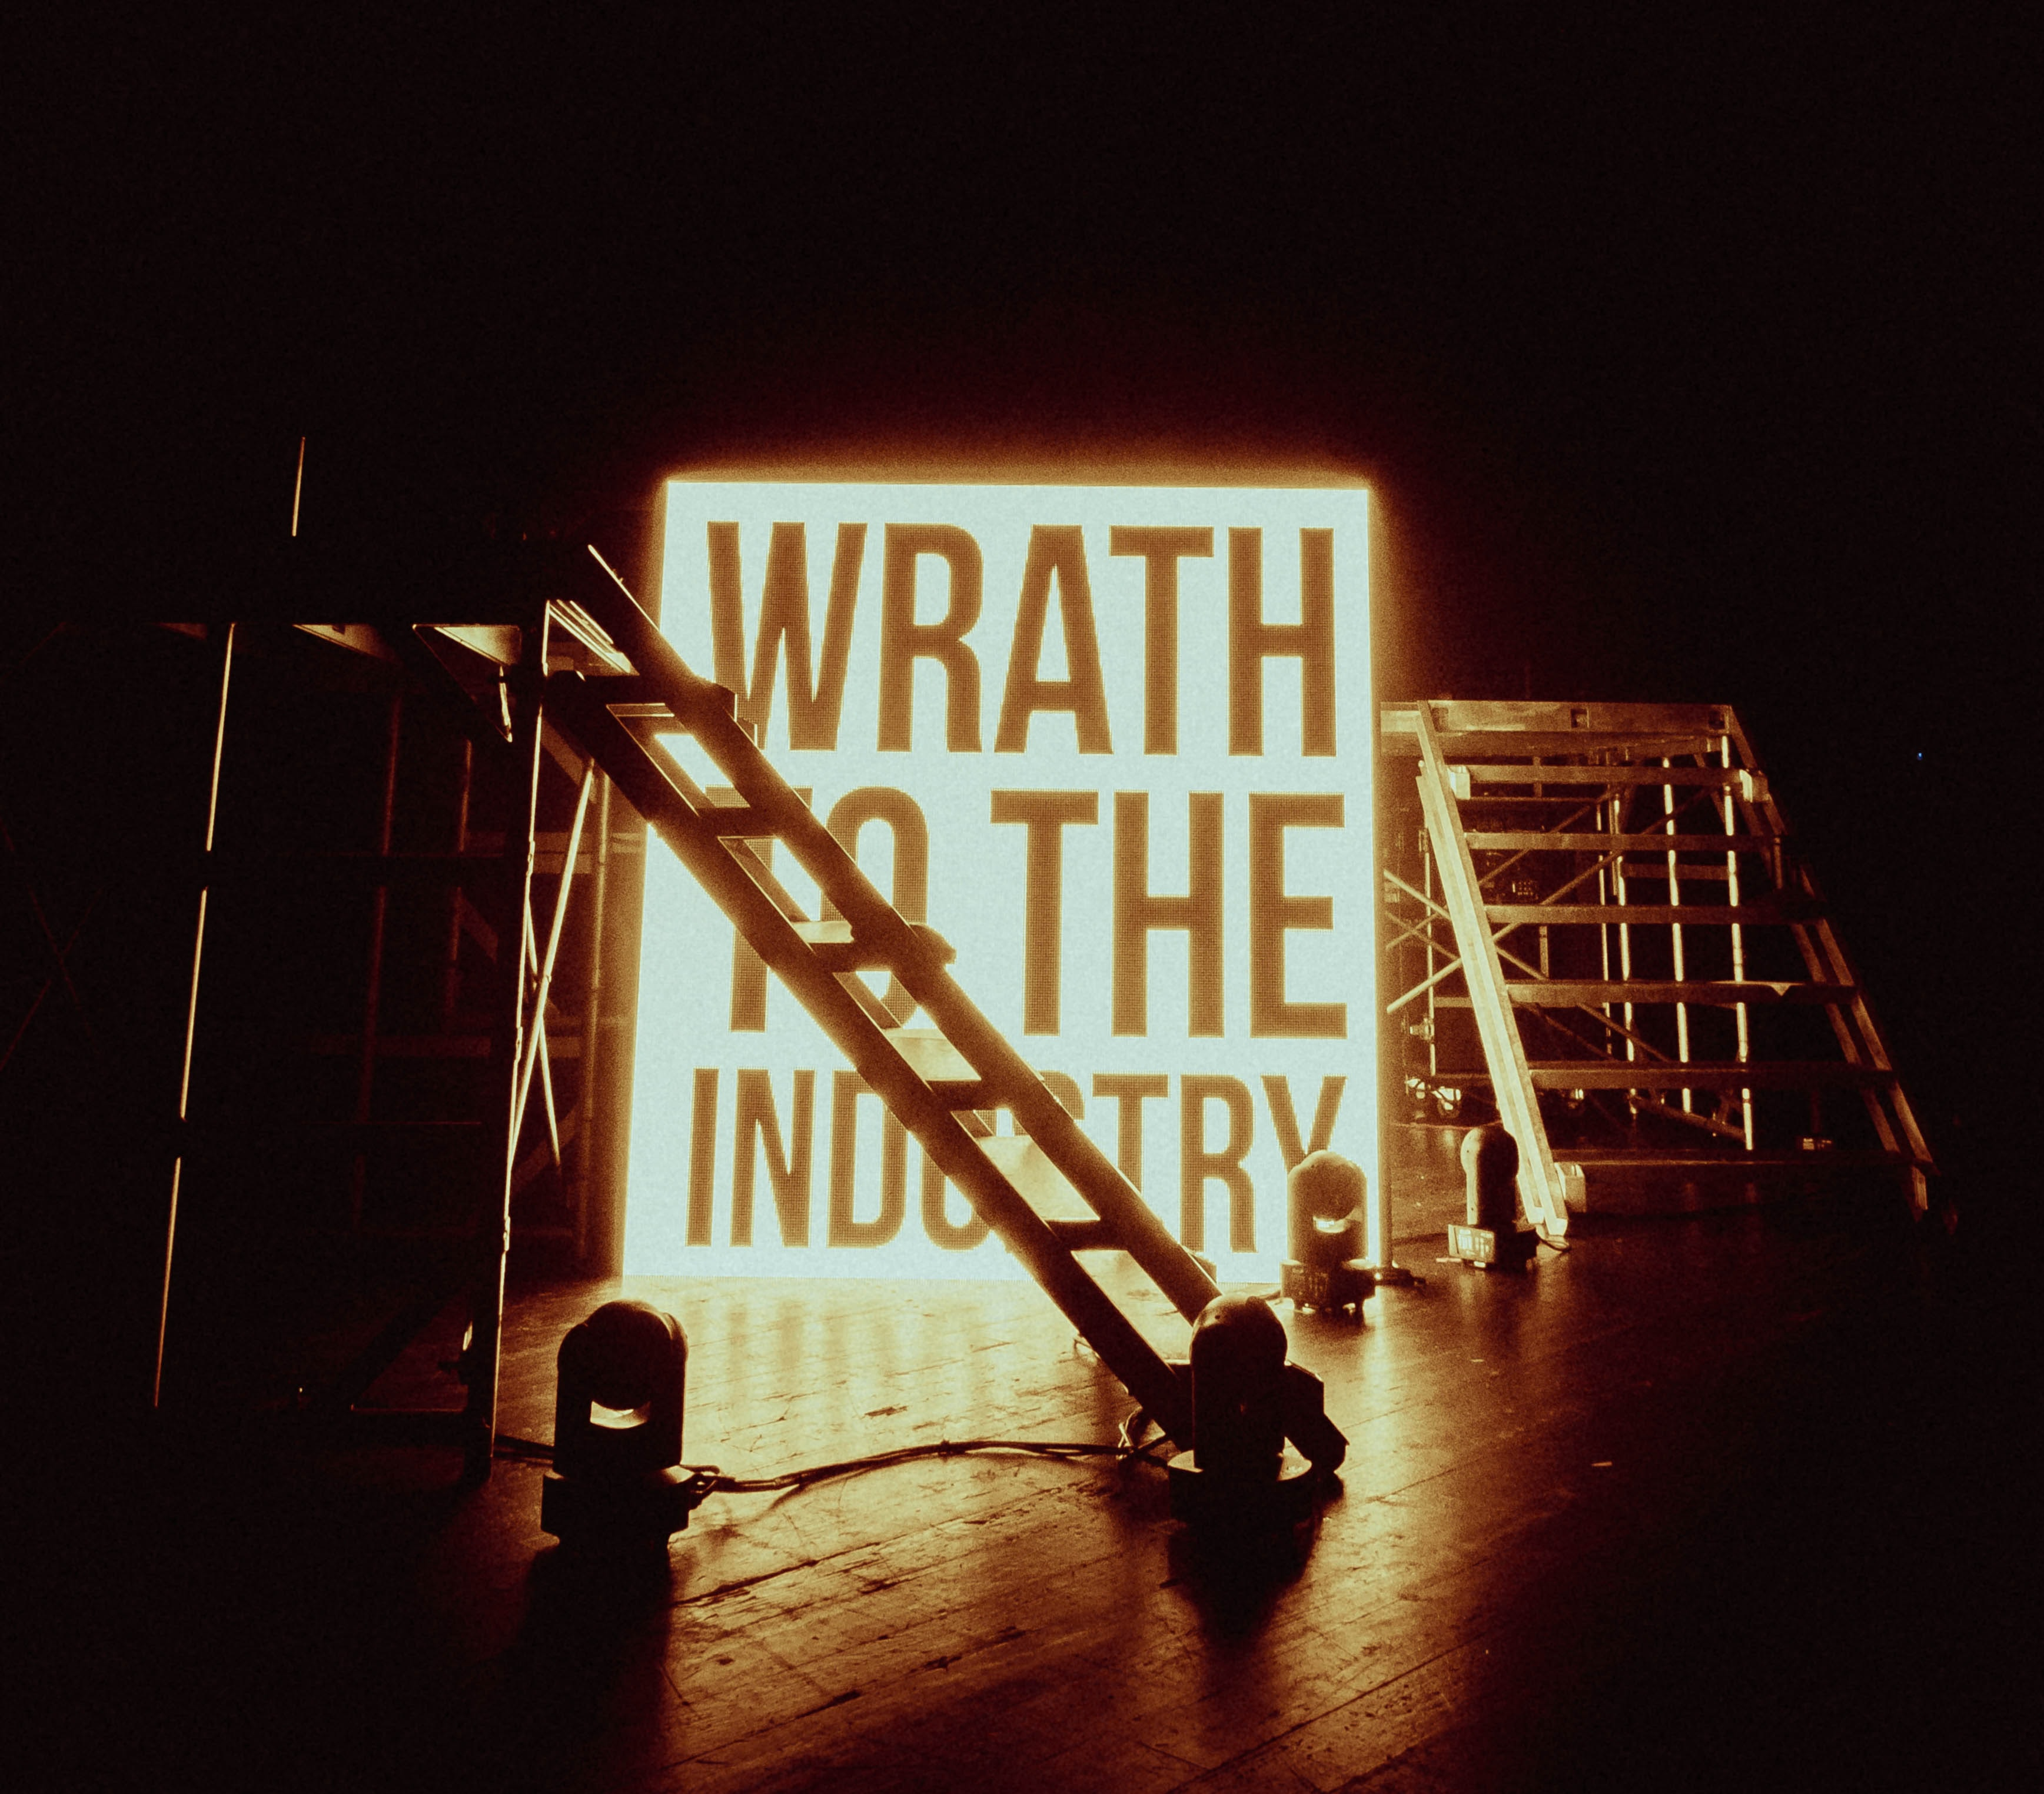 Wrath to the Industry signage